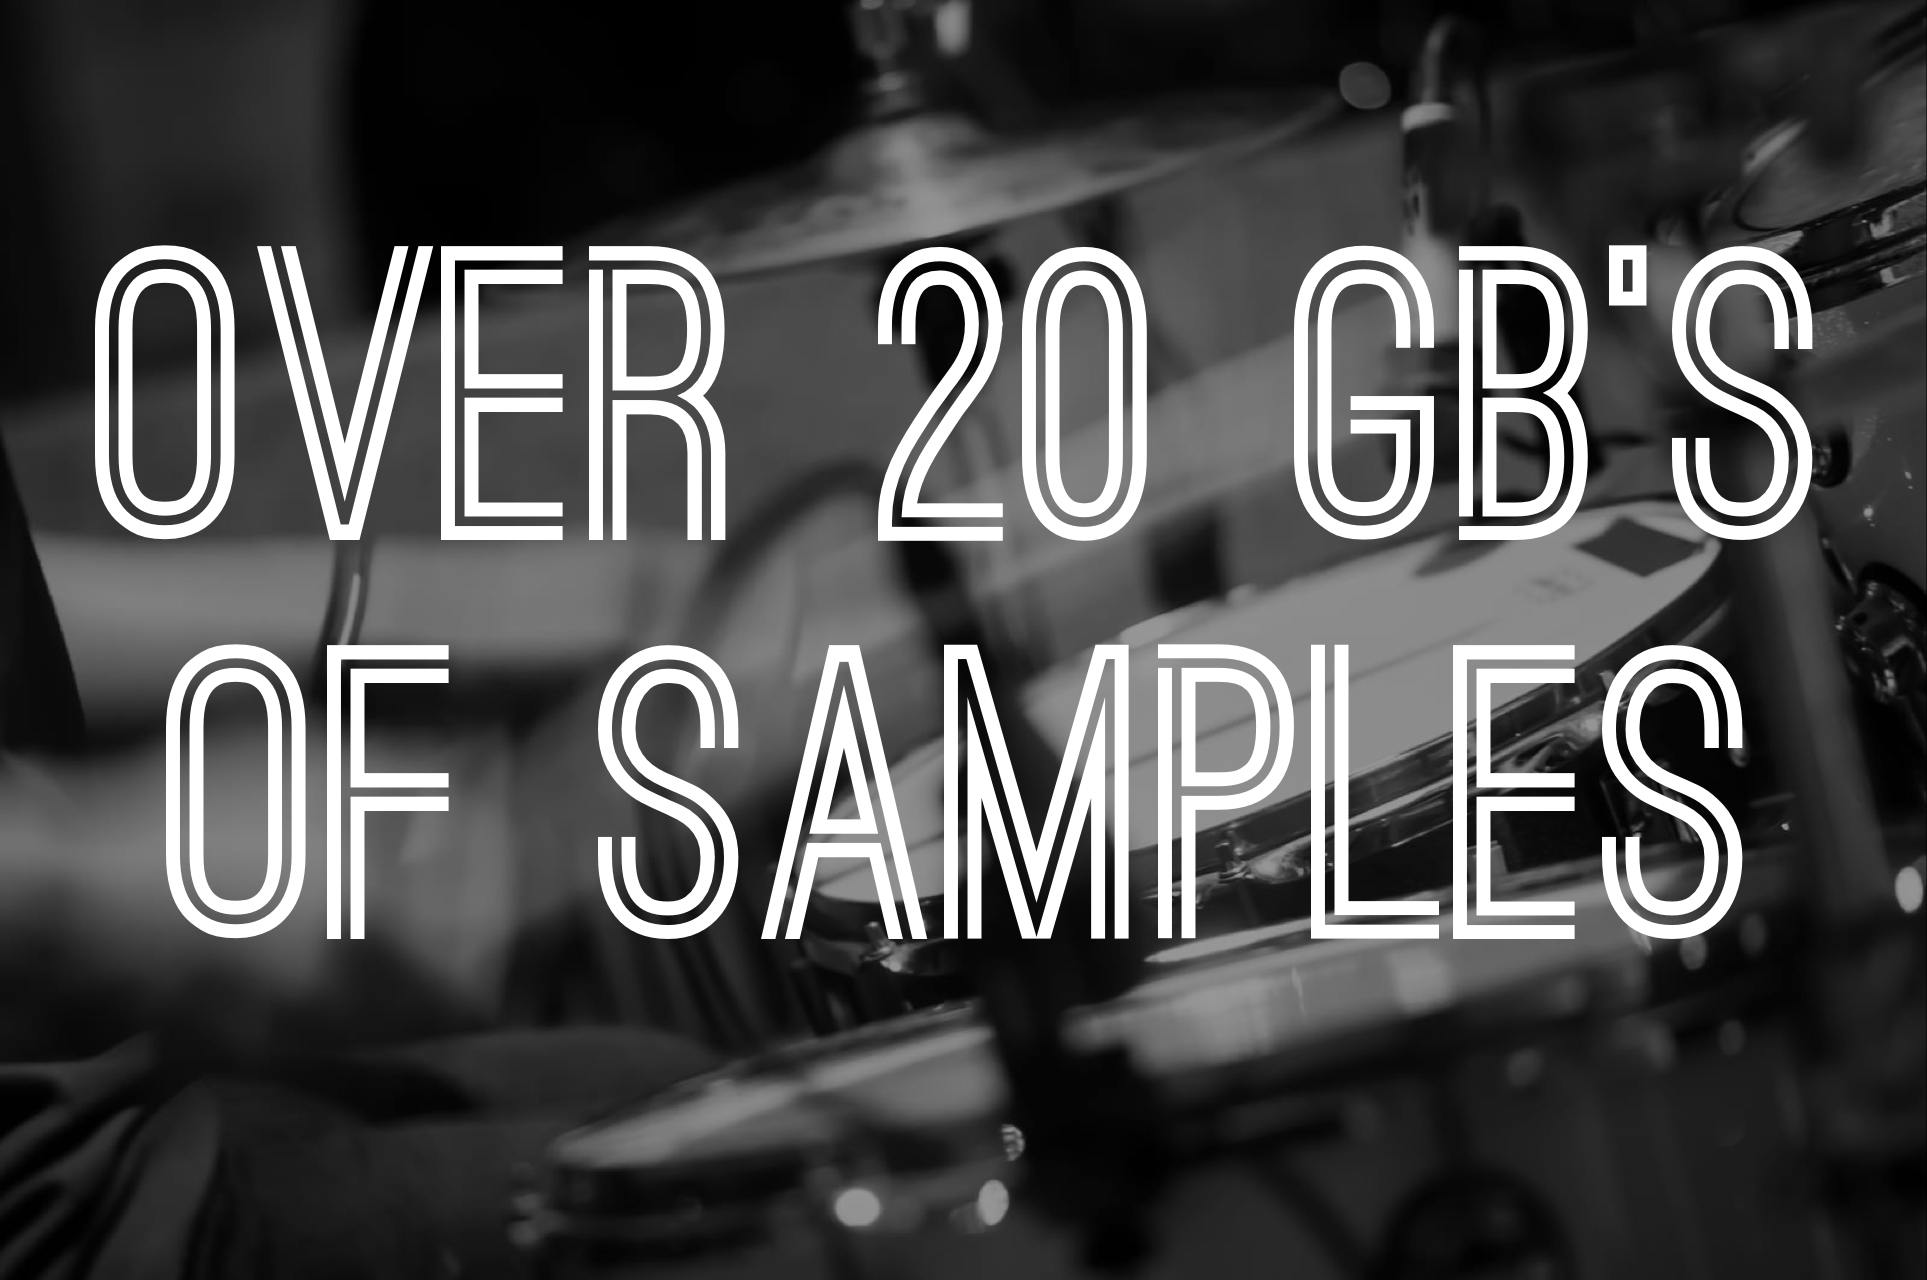 Over 20 GB's of Samples, Loops, Sounds, Vocals, Drums & More